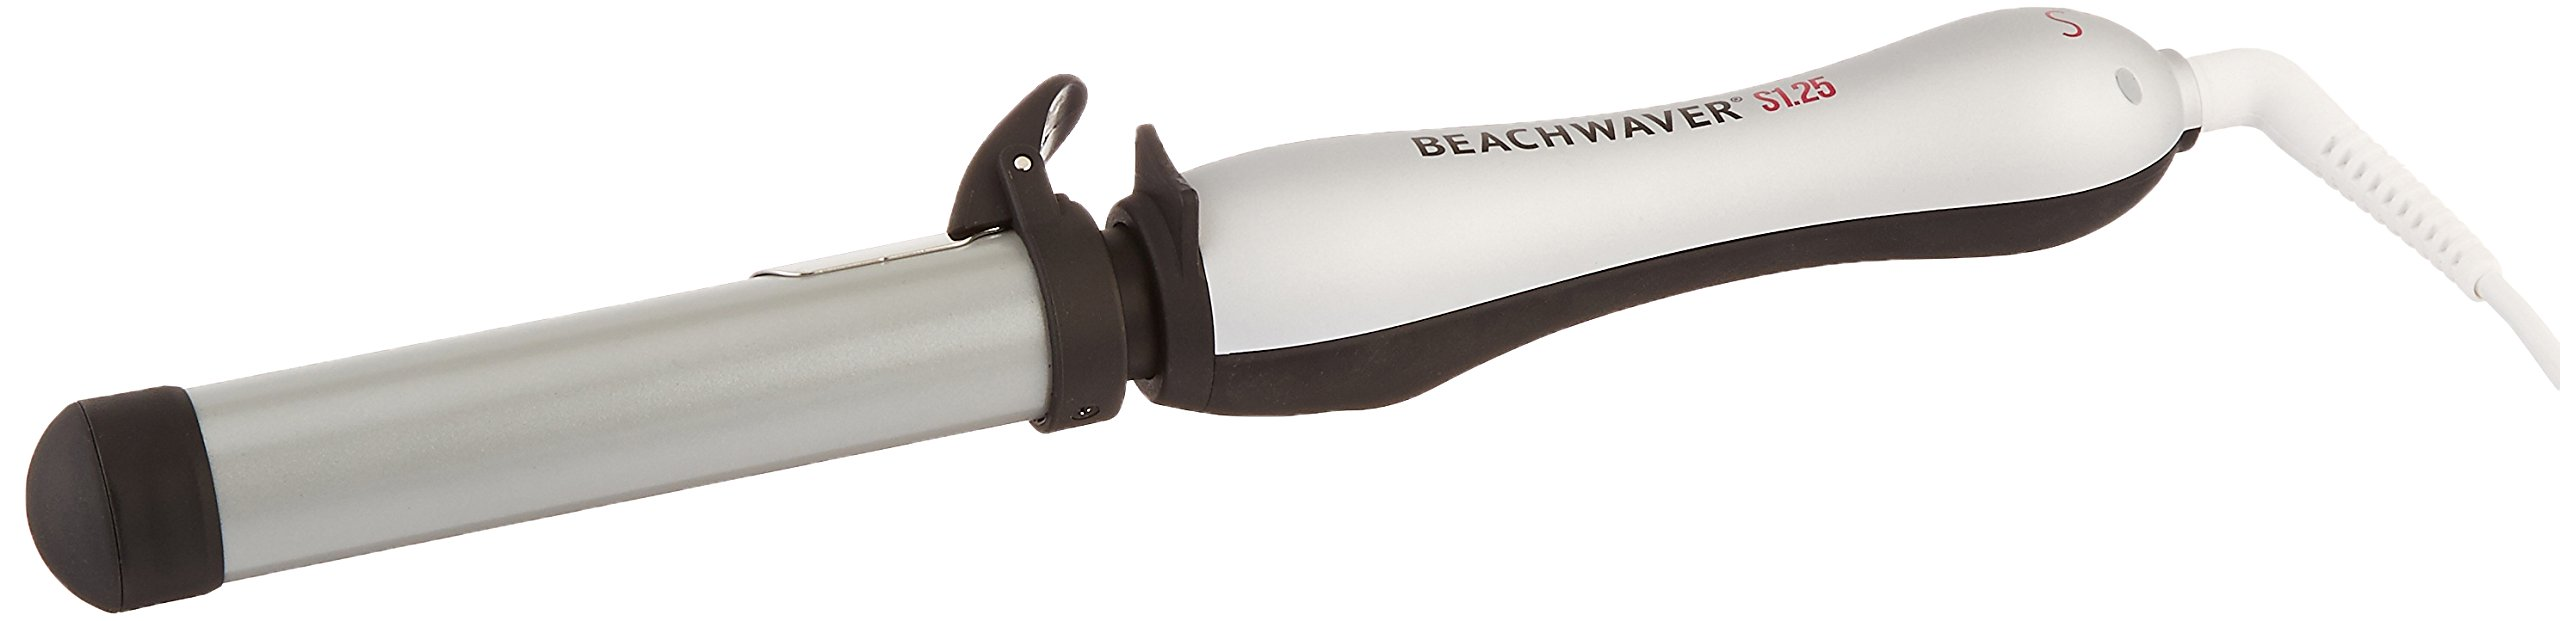 The Beachwaver Co. S1.25 Curling Iron by The Beachwaver Co. (Image #2)